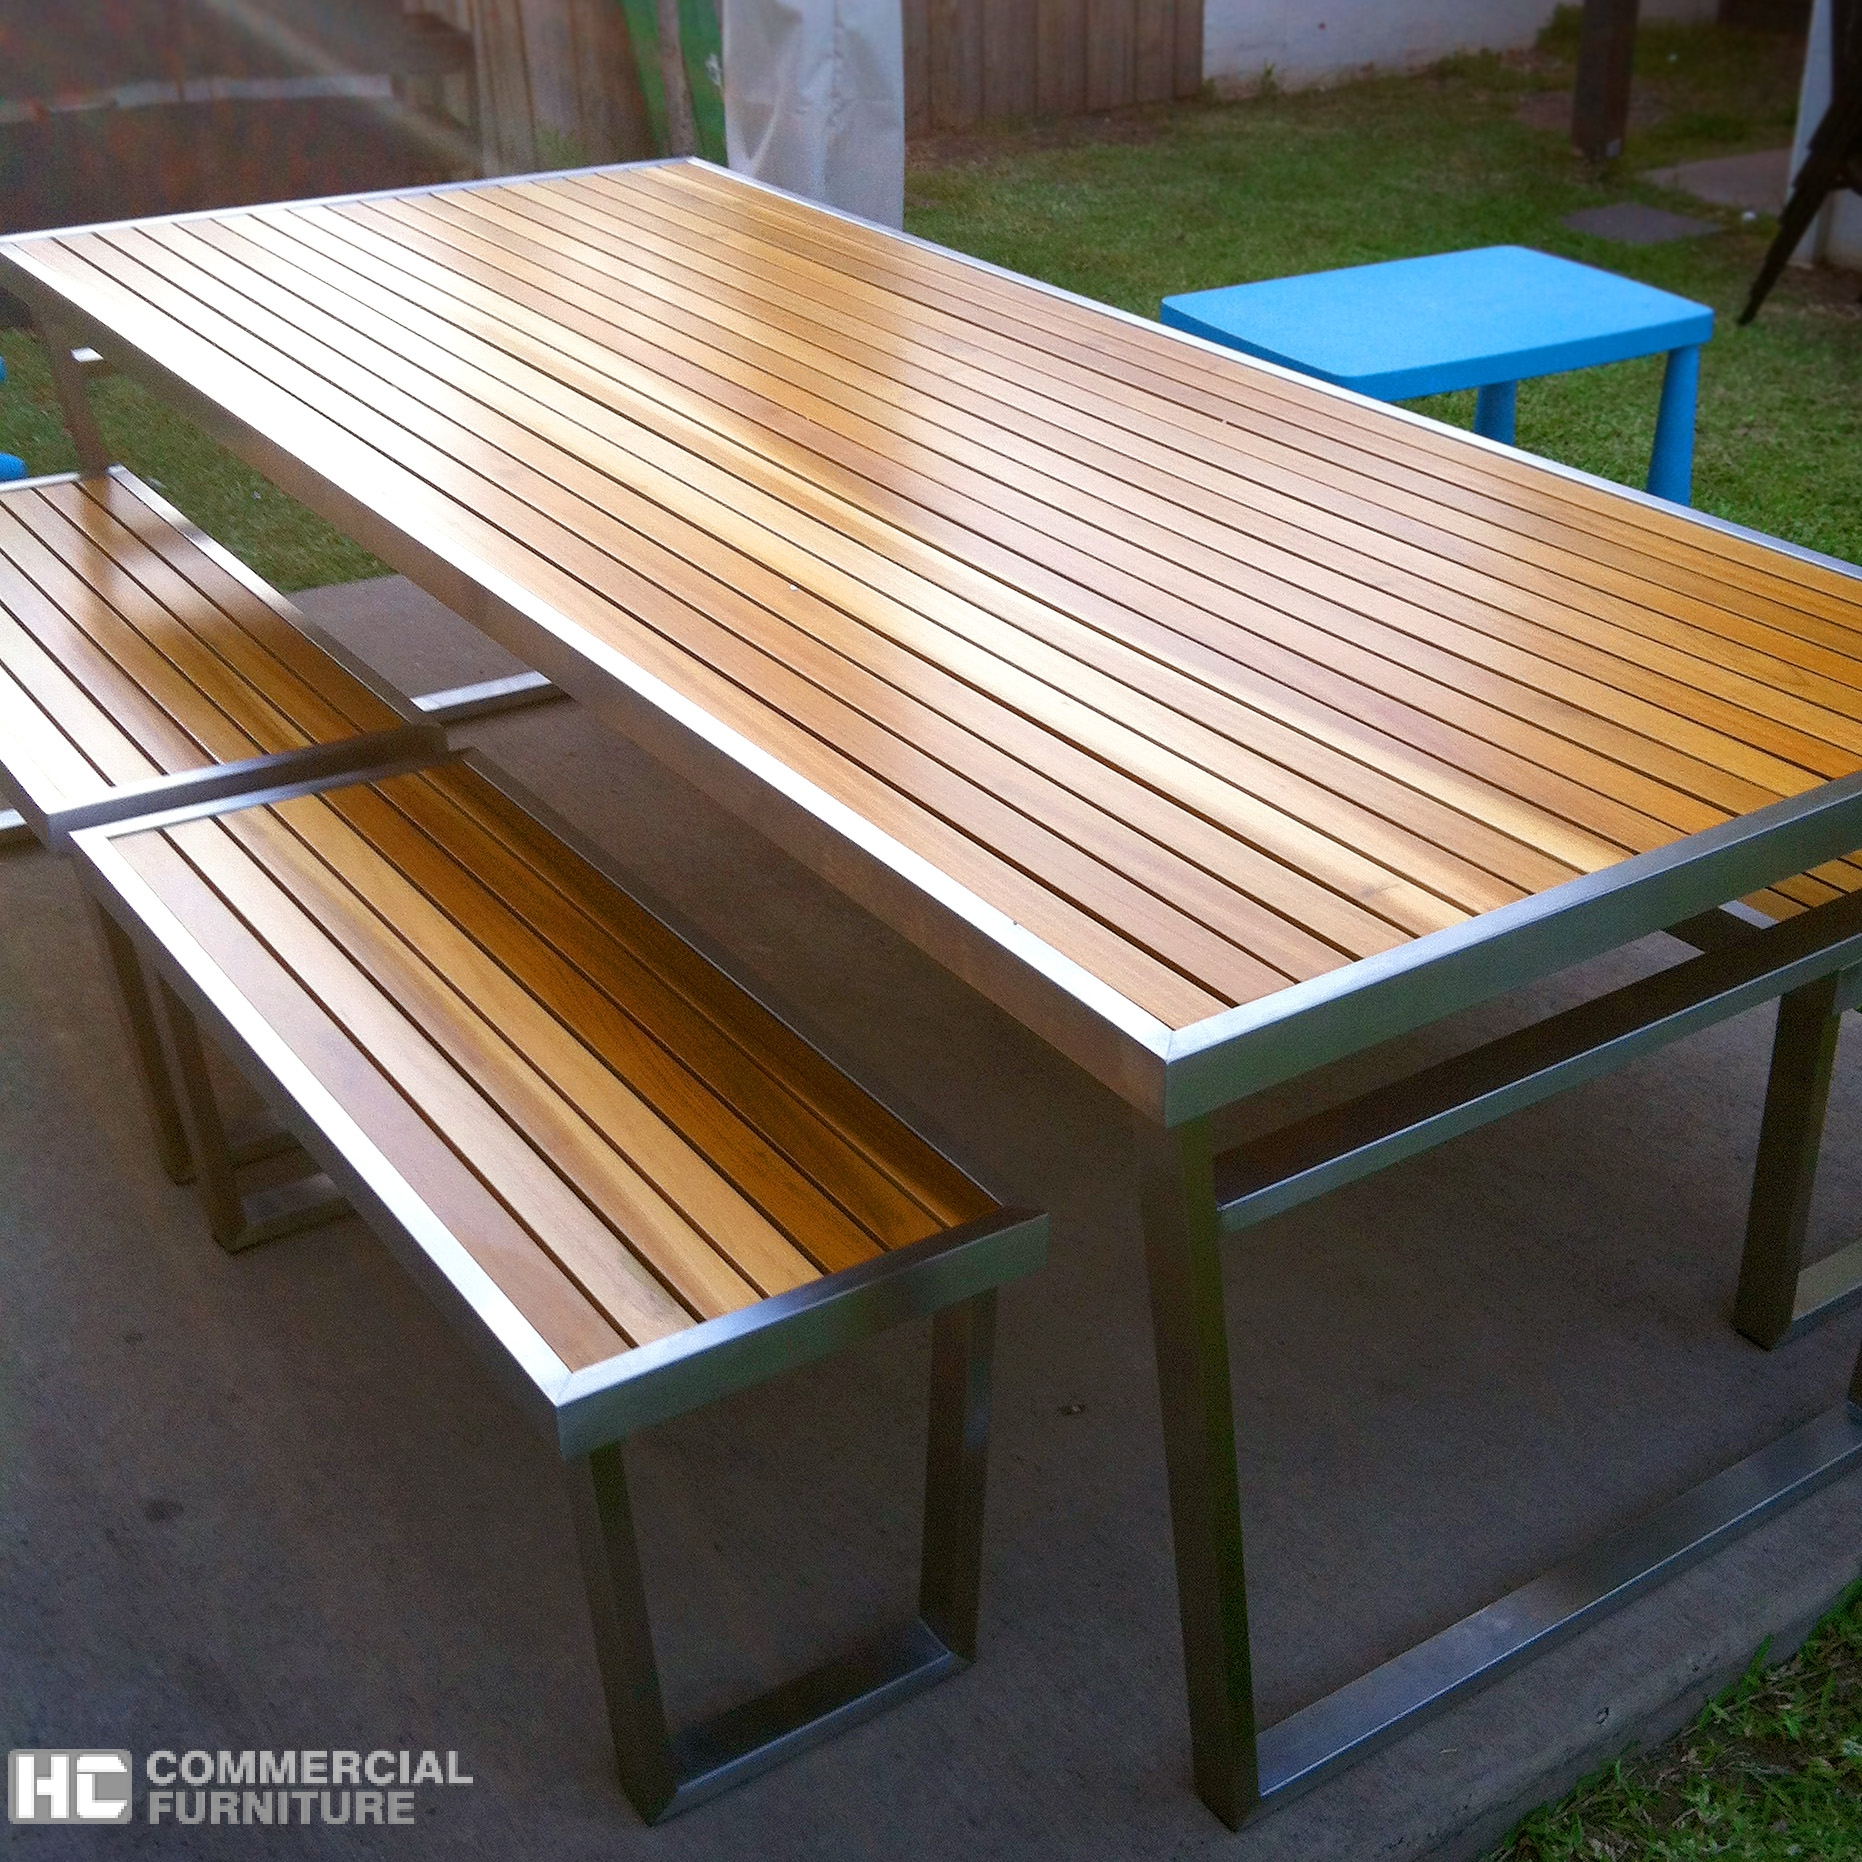 Outdoor Furniture Hccf Commercial Furniture